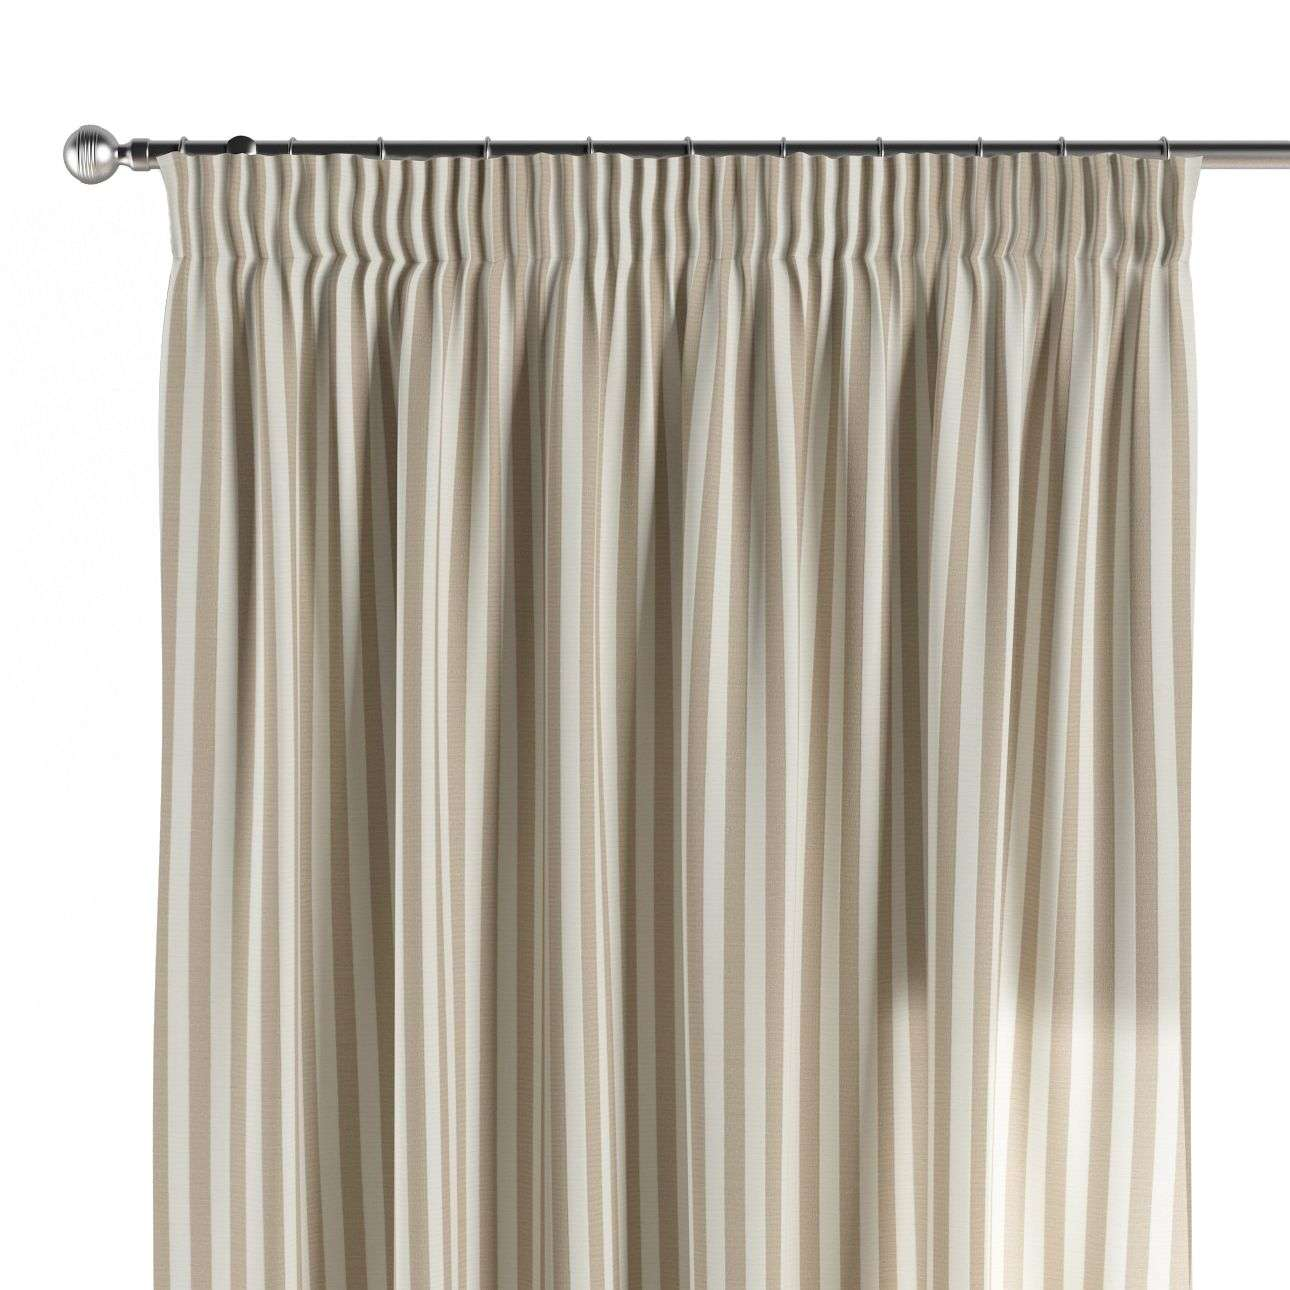 Pencil pleat curtains 130 x 260 cm (51 x 102 inch) in collection Quadro, fabric: 136-07